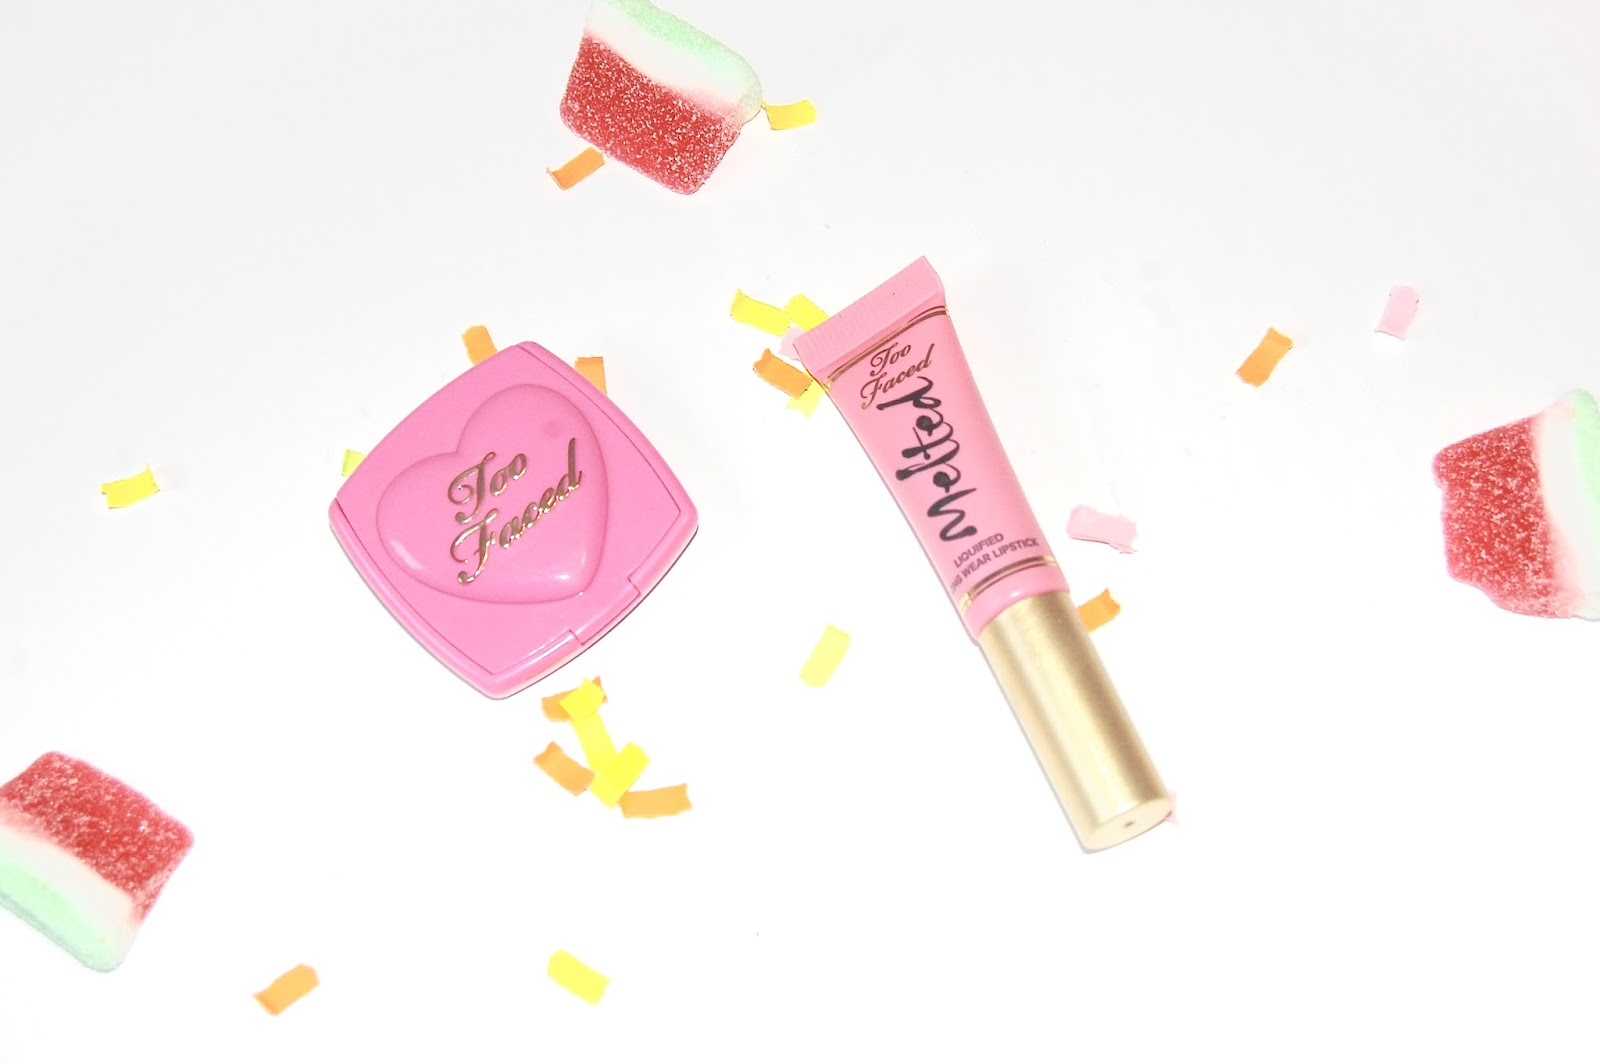 Too Faced Peony lipstick and Justify My Love blush duo